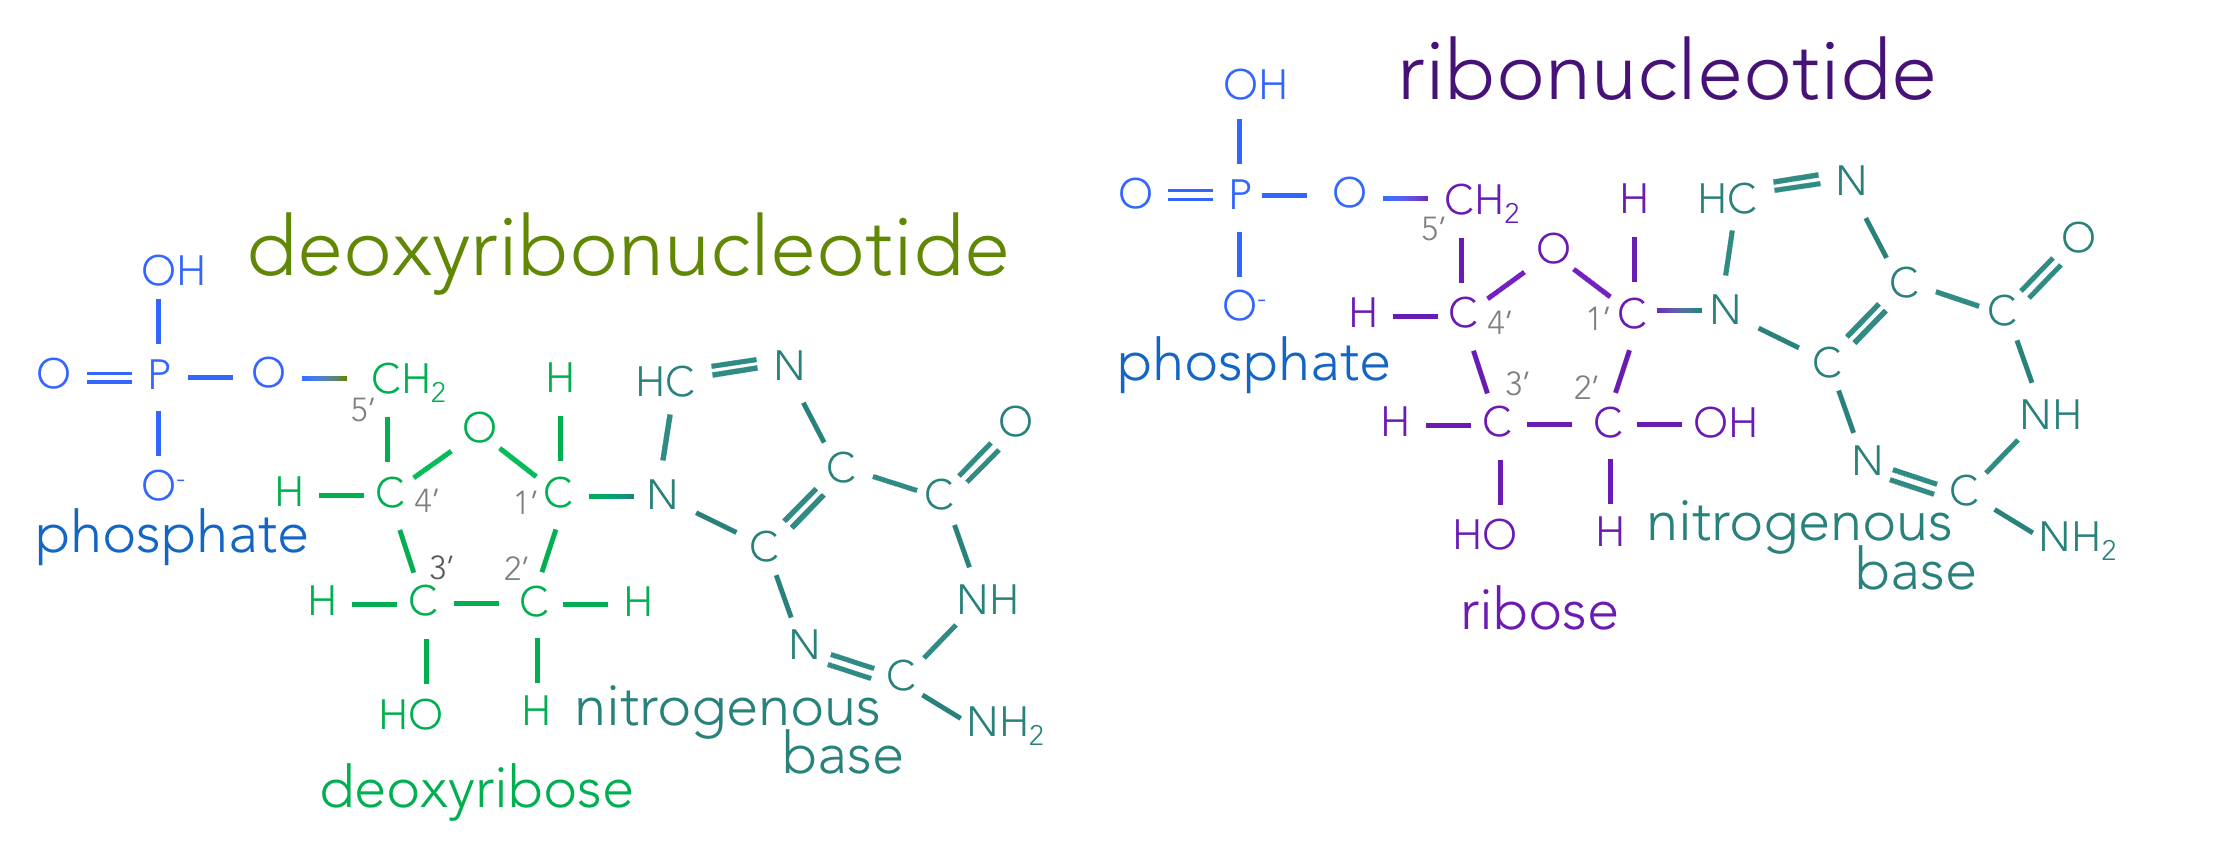 Figure 4.  Skeletal structure of nucleotides. Nucleotides are composed of three molecular components: a phosphate, a sugar and a nitrogenous base. Living organisms contain both deoxyribonucleotides (which combine to form DNA) and ribonucleotides (forming RNA). Deoxyribonucleotides contain the sugar deoxyribose, where as ribonucleotides contain the sugar ribose. These sugars are identical, except the presence of an oxygen on the 2' carbon in ribose. Deoxyribonucleotides have one of four nitrogenous bases: adenine, thymine, cytosine or guanine. Ribonucleotides have the nitrogenous bases: adenine, uracil, cytosine and guanine.